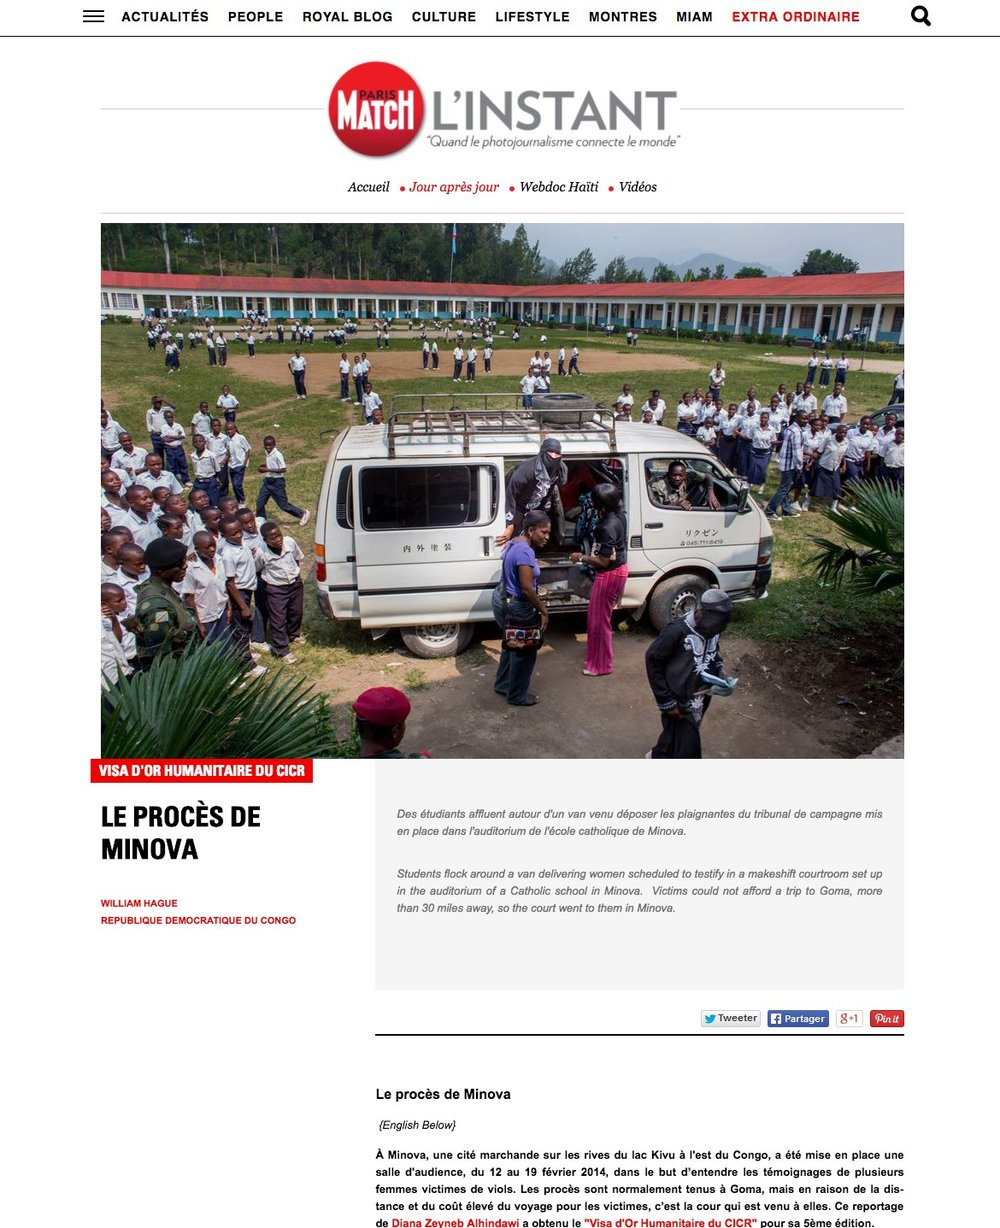 CLICK on title below to link to full article with slideshow     Le procès de Minova   (The Minova Trial)  | L'Instant - Paris Match, Jul 2015